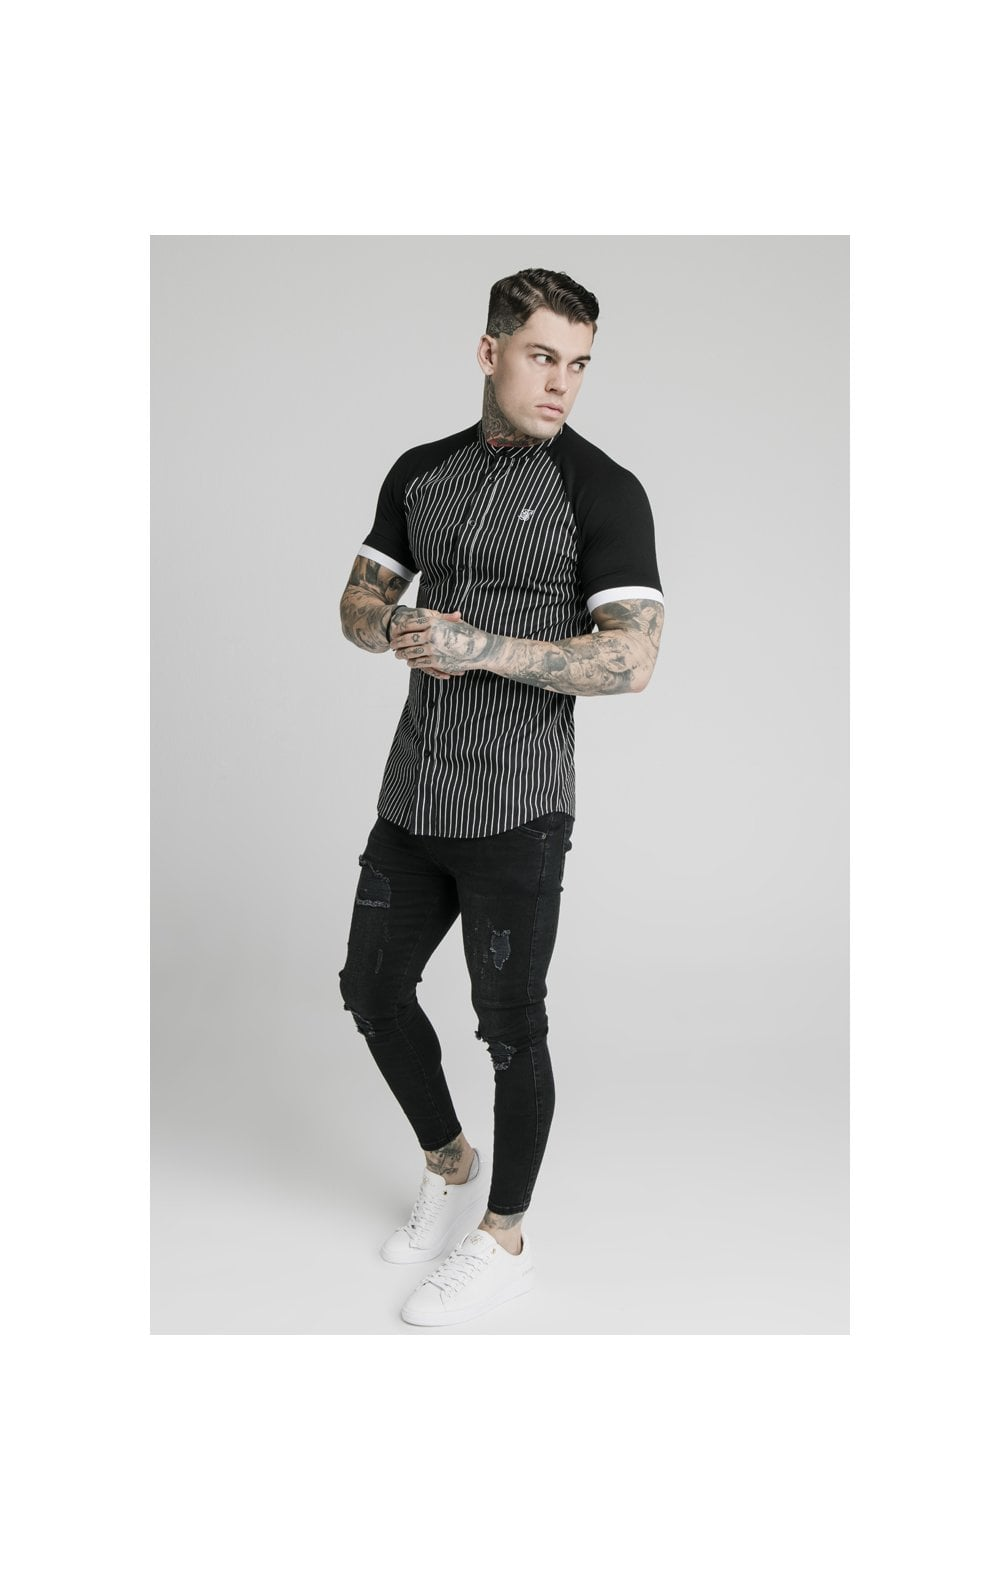 Load image into Gallery viewer, SikSilk S/S Raglan Inset Cuff  Shirt - Black & White (4)